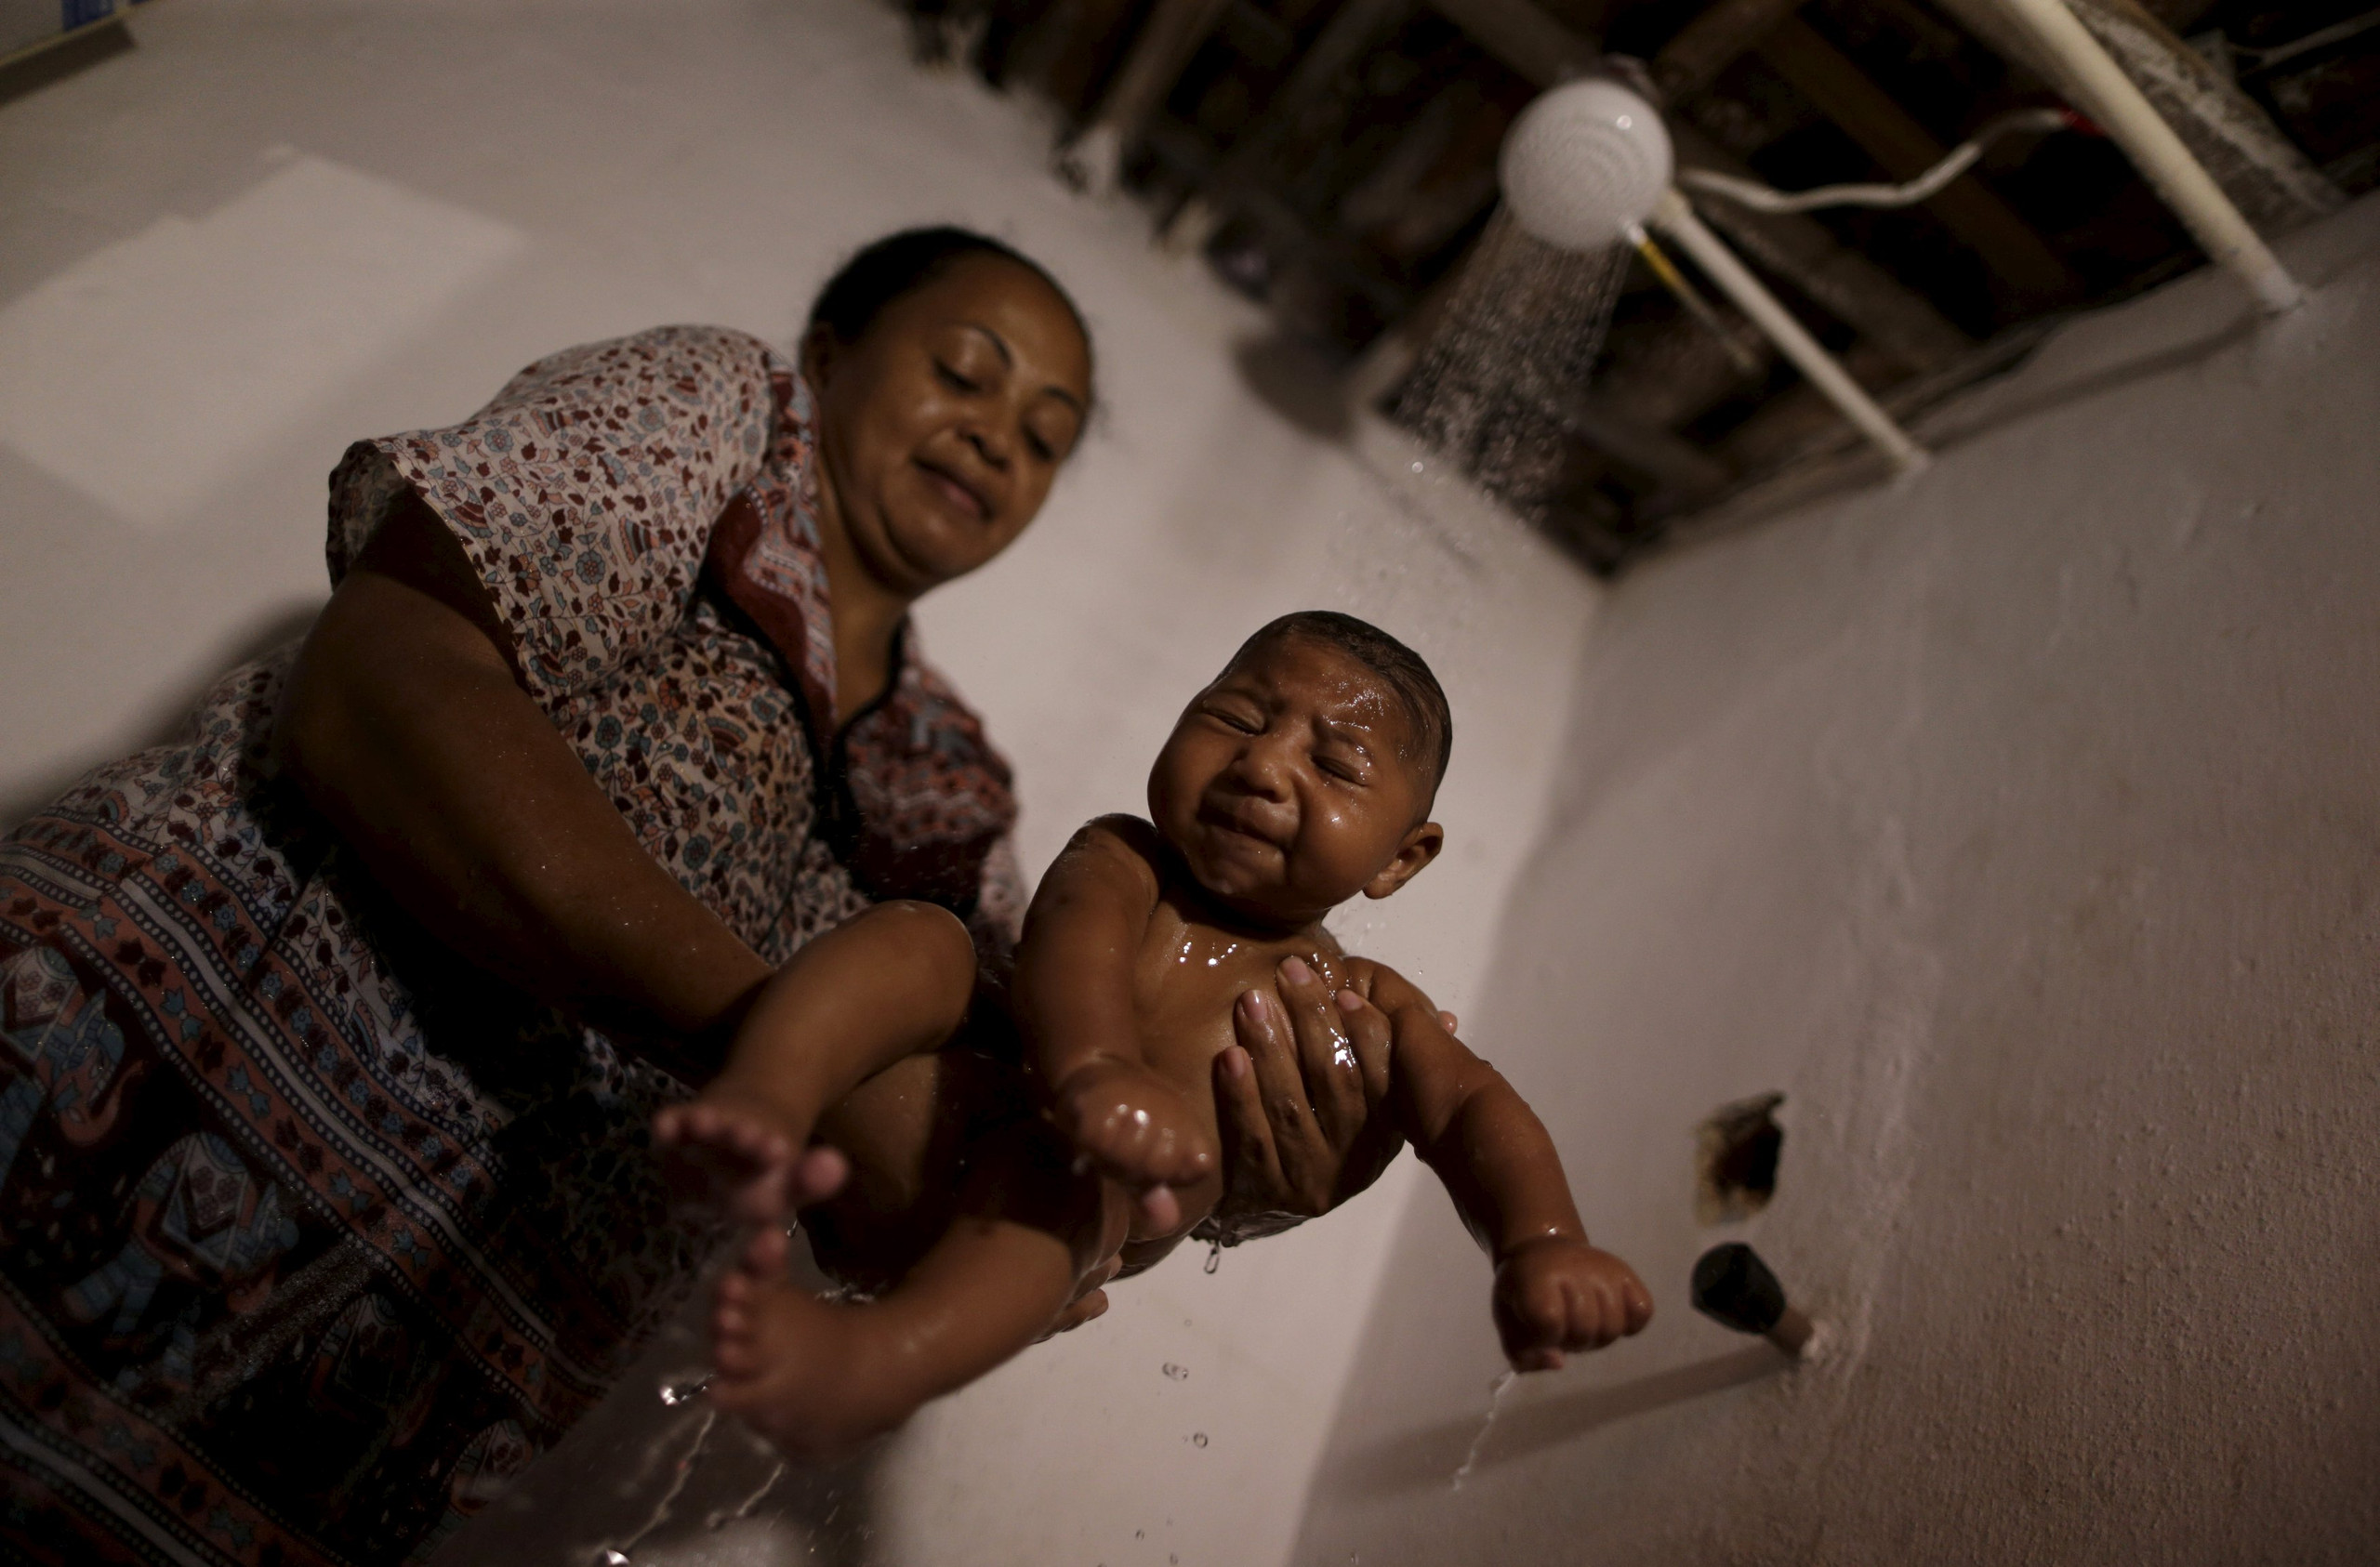 Hilda Venancio bathes her son Matheus, who has microcephaly, in Recife, Brazil